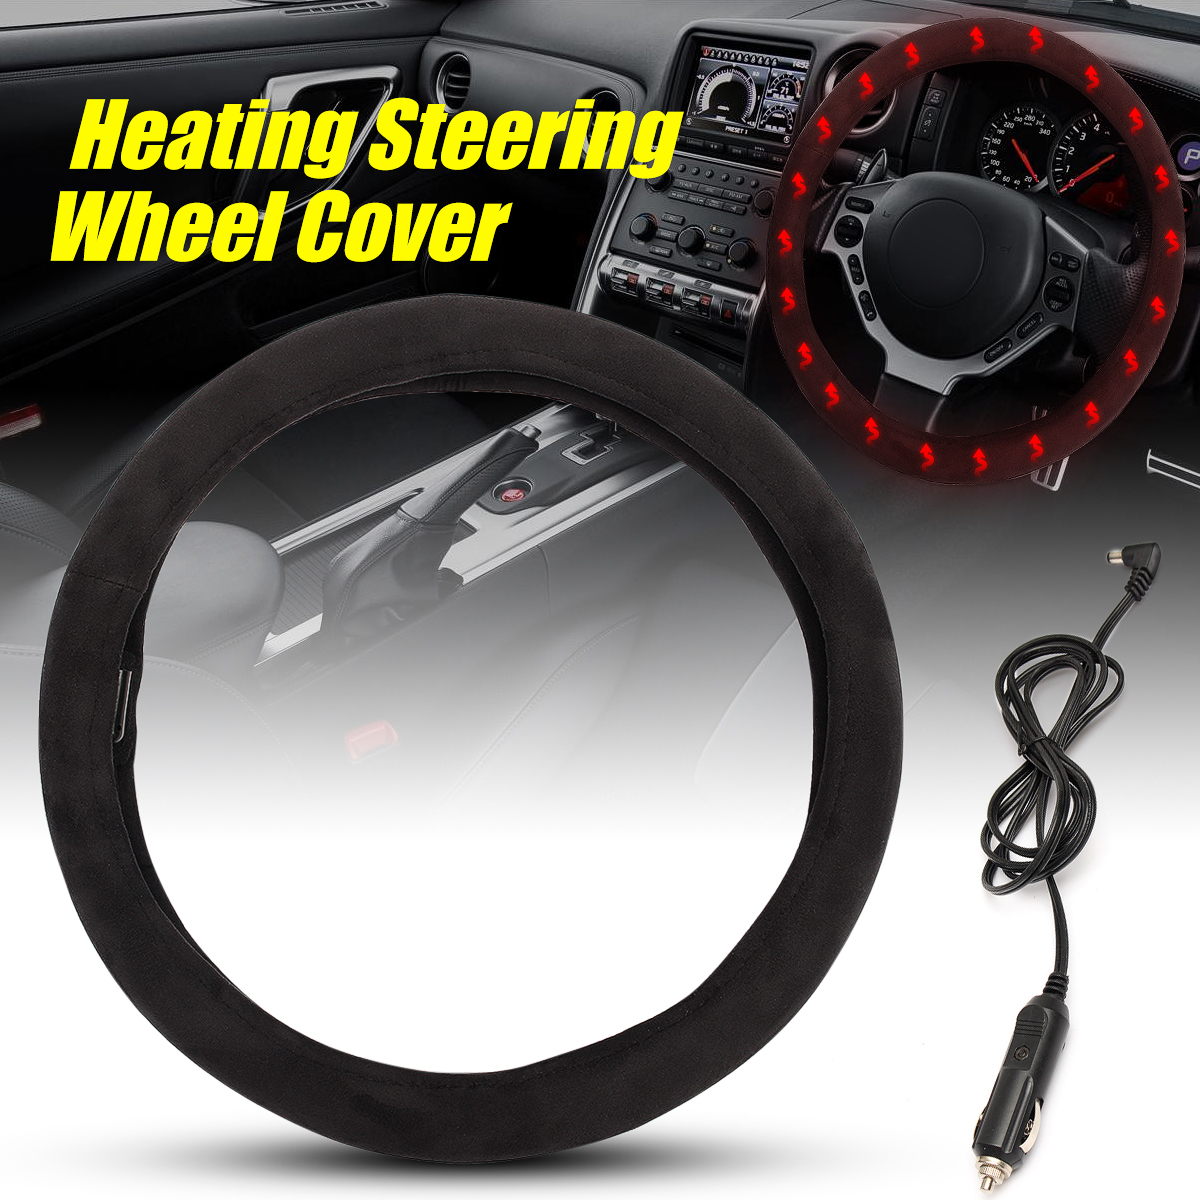 12V 38cm Heated Universal Car Steering-wheel Cover 38CM Car-styling Sport Auto Wheel Covers Anti-Slip Automotive Accessories